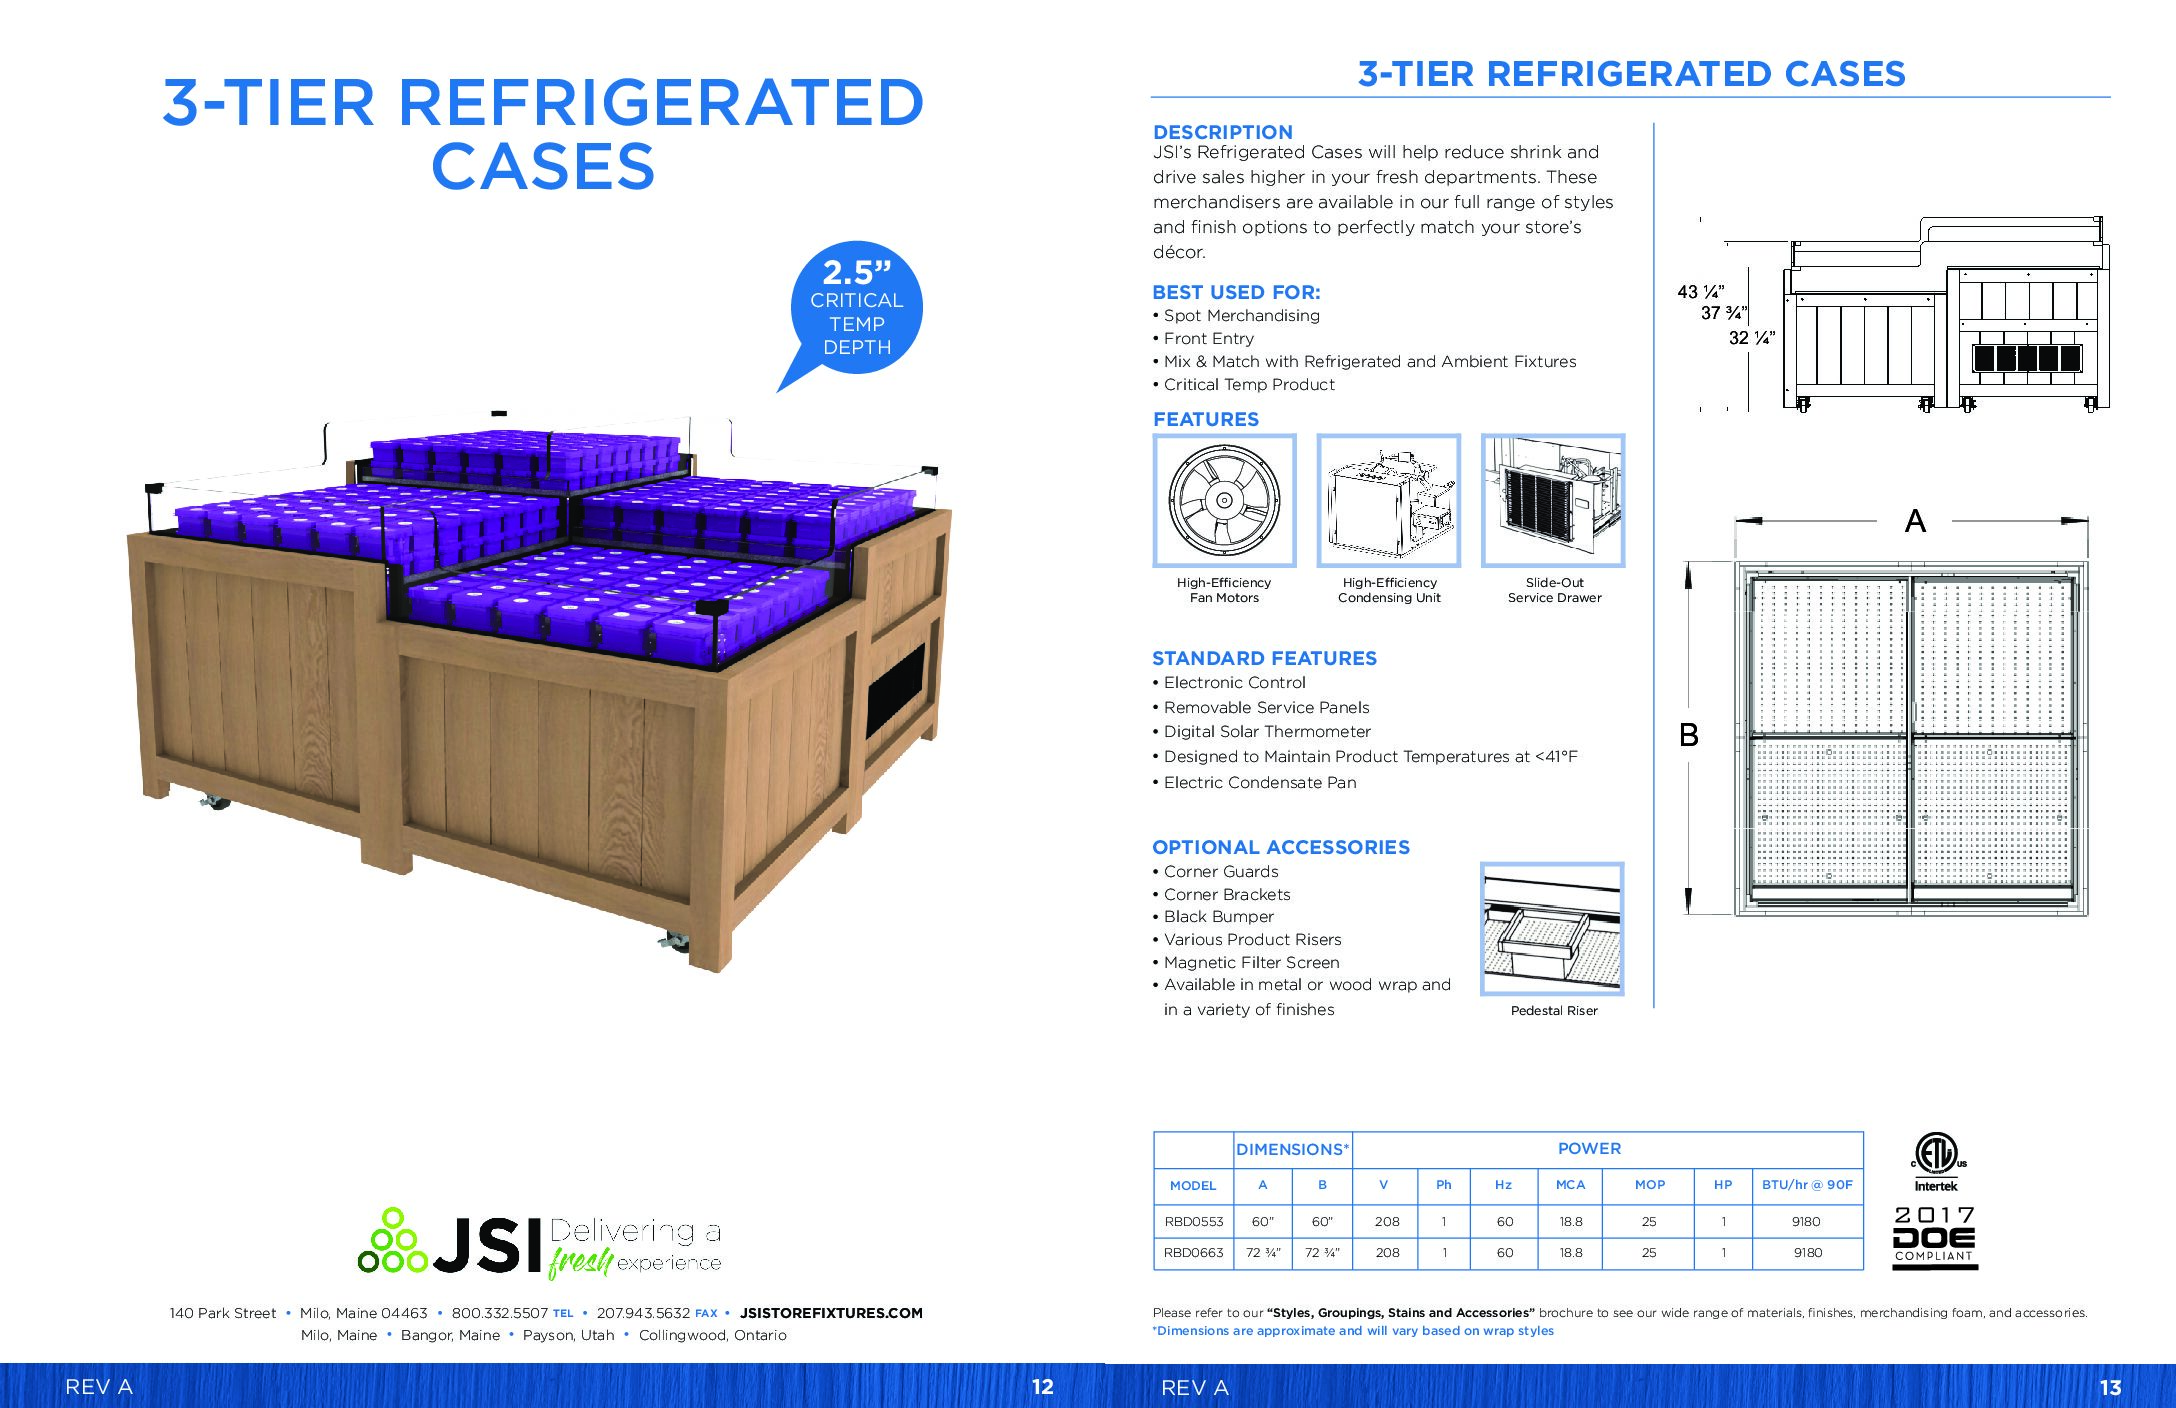 3-Tier Refrigerated Cases (PDF)